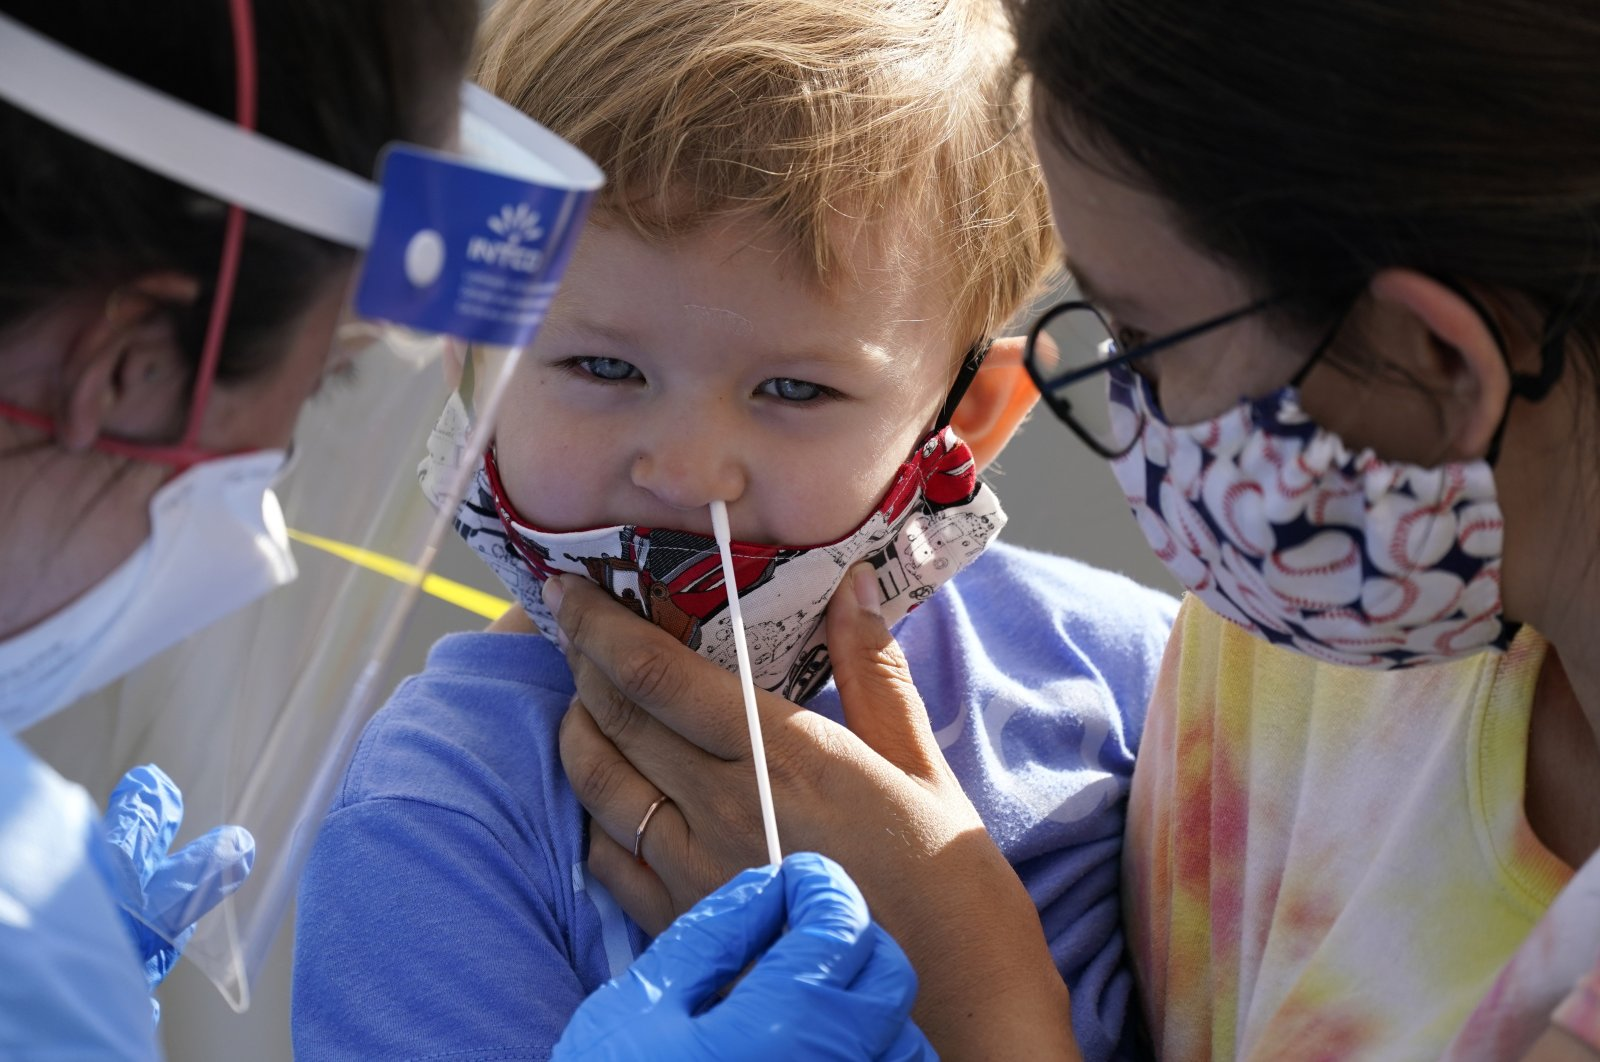 Penny Brown, 2, is held by her mother, Heather Brown, as her nose is lightly swabbed during a test for COVID-19 at a new walk-up testing site at Chief Sealth High School, in Seattle, Washington, Aug. 28, 2020. (AP Photo)